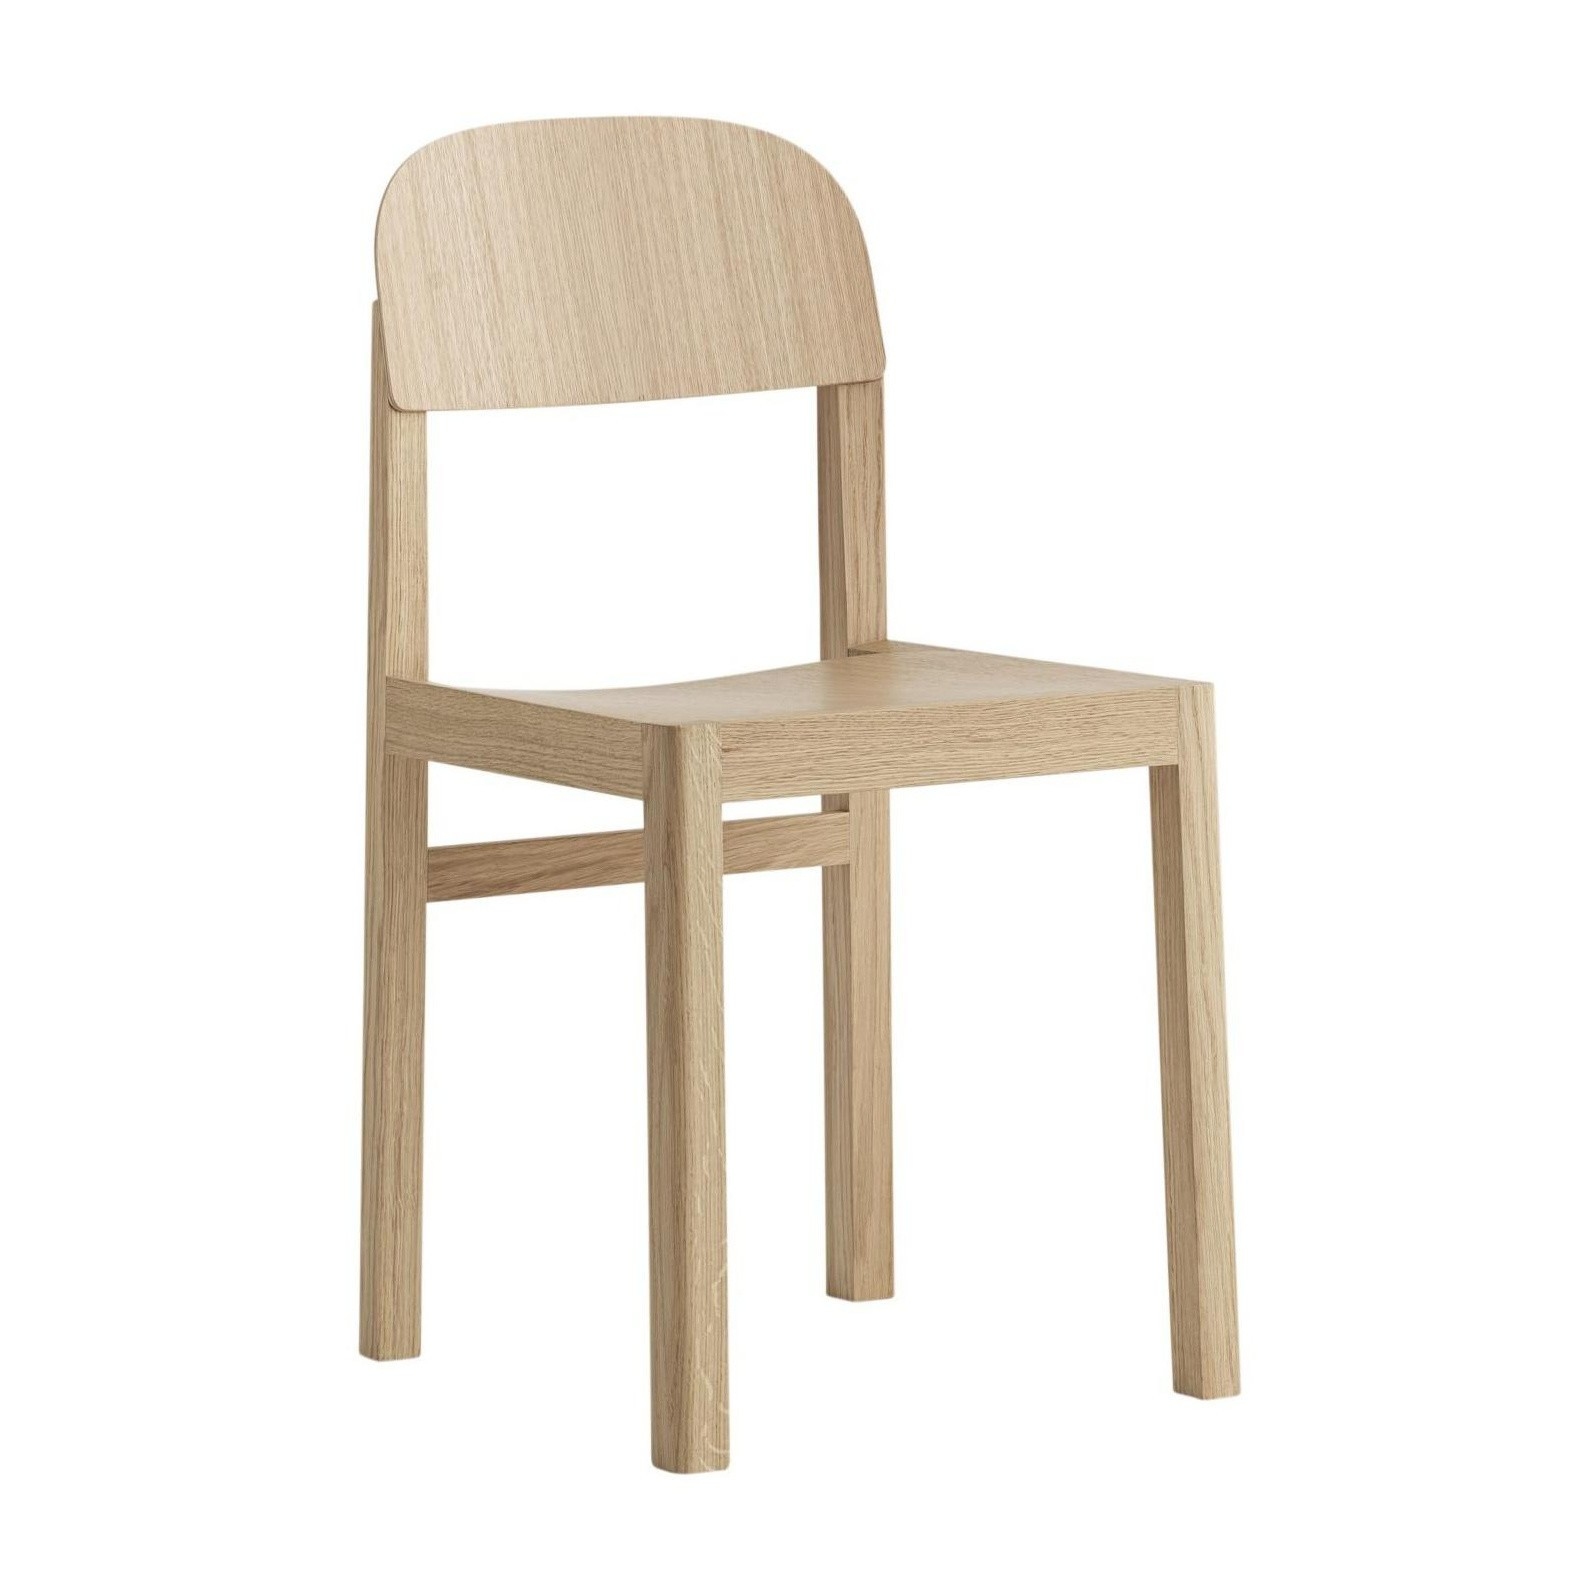 muuto workshop chair ambientedirect rh ambientedirect com